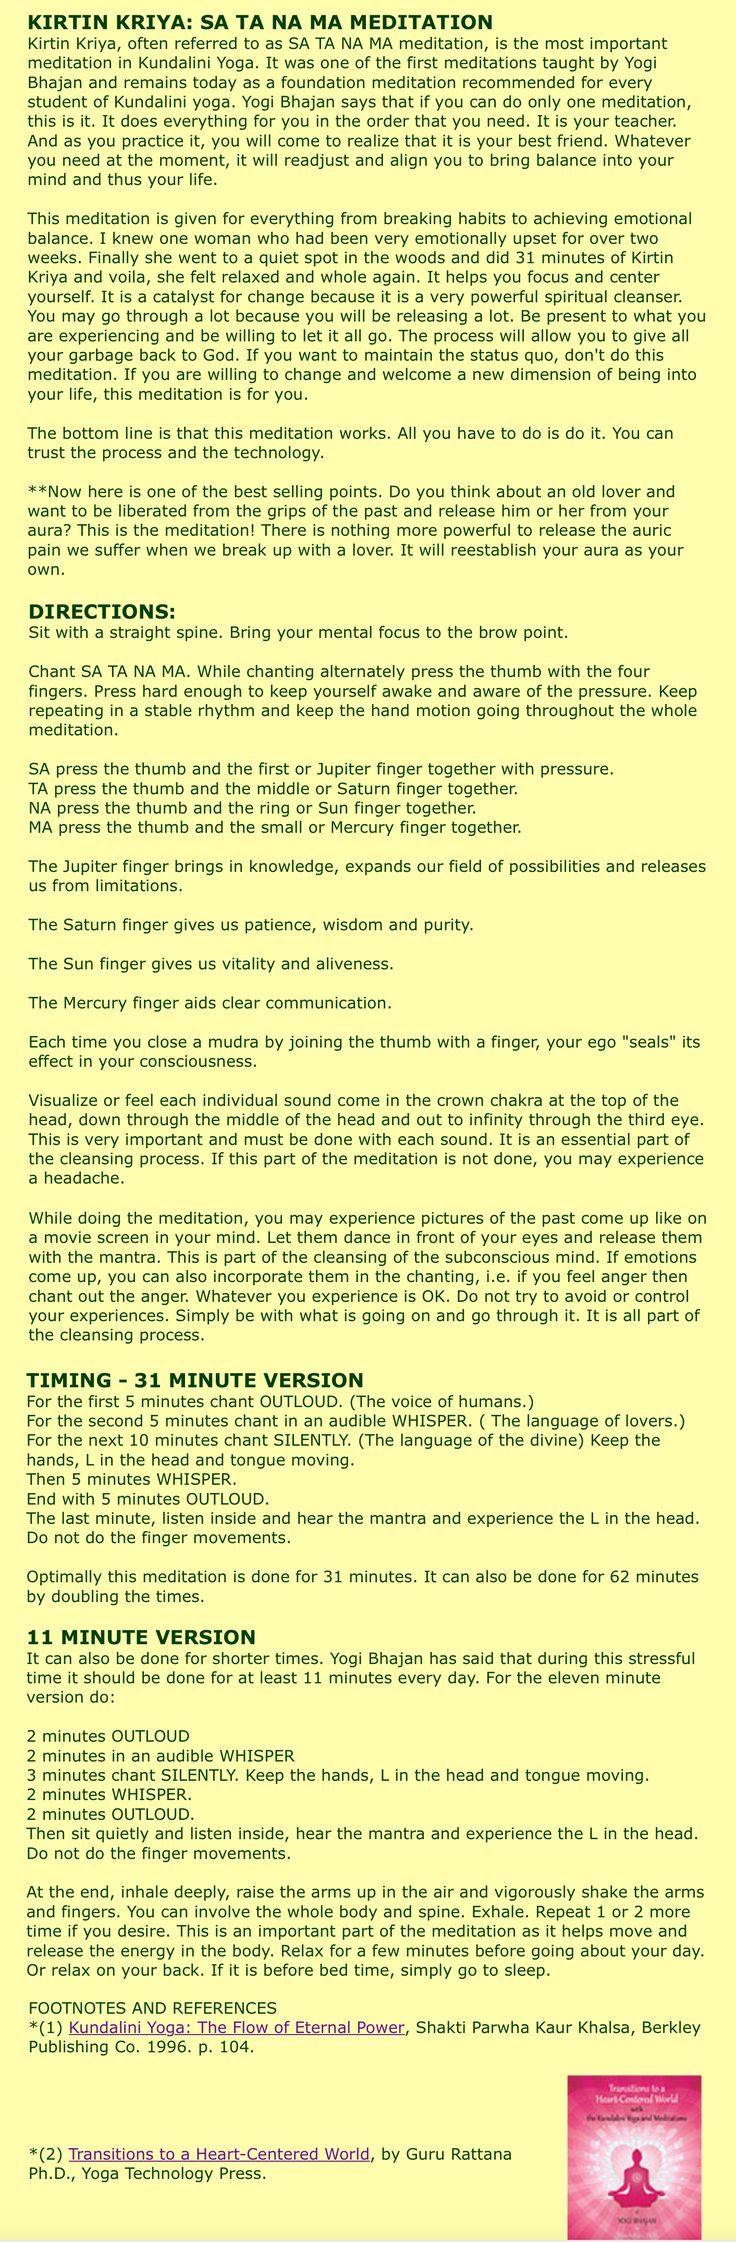 """Kundalini Yoga - Free On-Line Training Lesson 15 - Kirtan Kriya, for Evolutionary Change..... by another pinner: """"Does anyone know the sa ta na ma chant? I learned it in a conference and it cleared my sinuses on the spot. I di it when I am going to sleep at night because it relaxes me. It is sounds and fingers going at the same time. The Alzheimer's Association uses it with their people."""""""